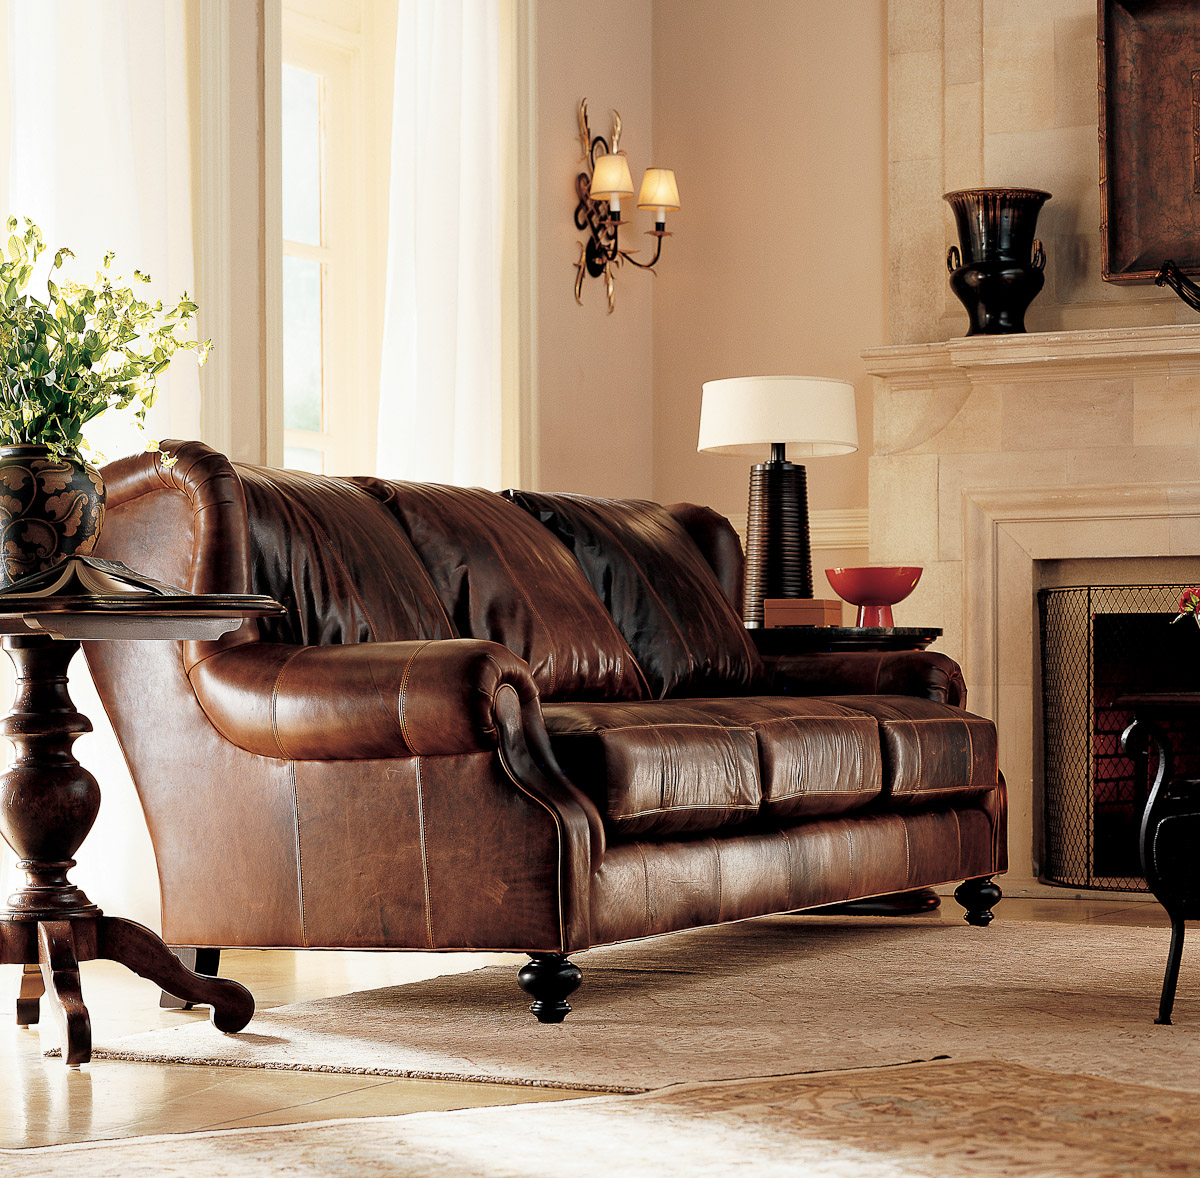 Beautiful room with brown leather sofas great home design for Leather living room furniture